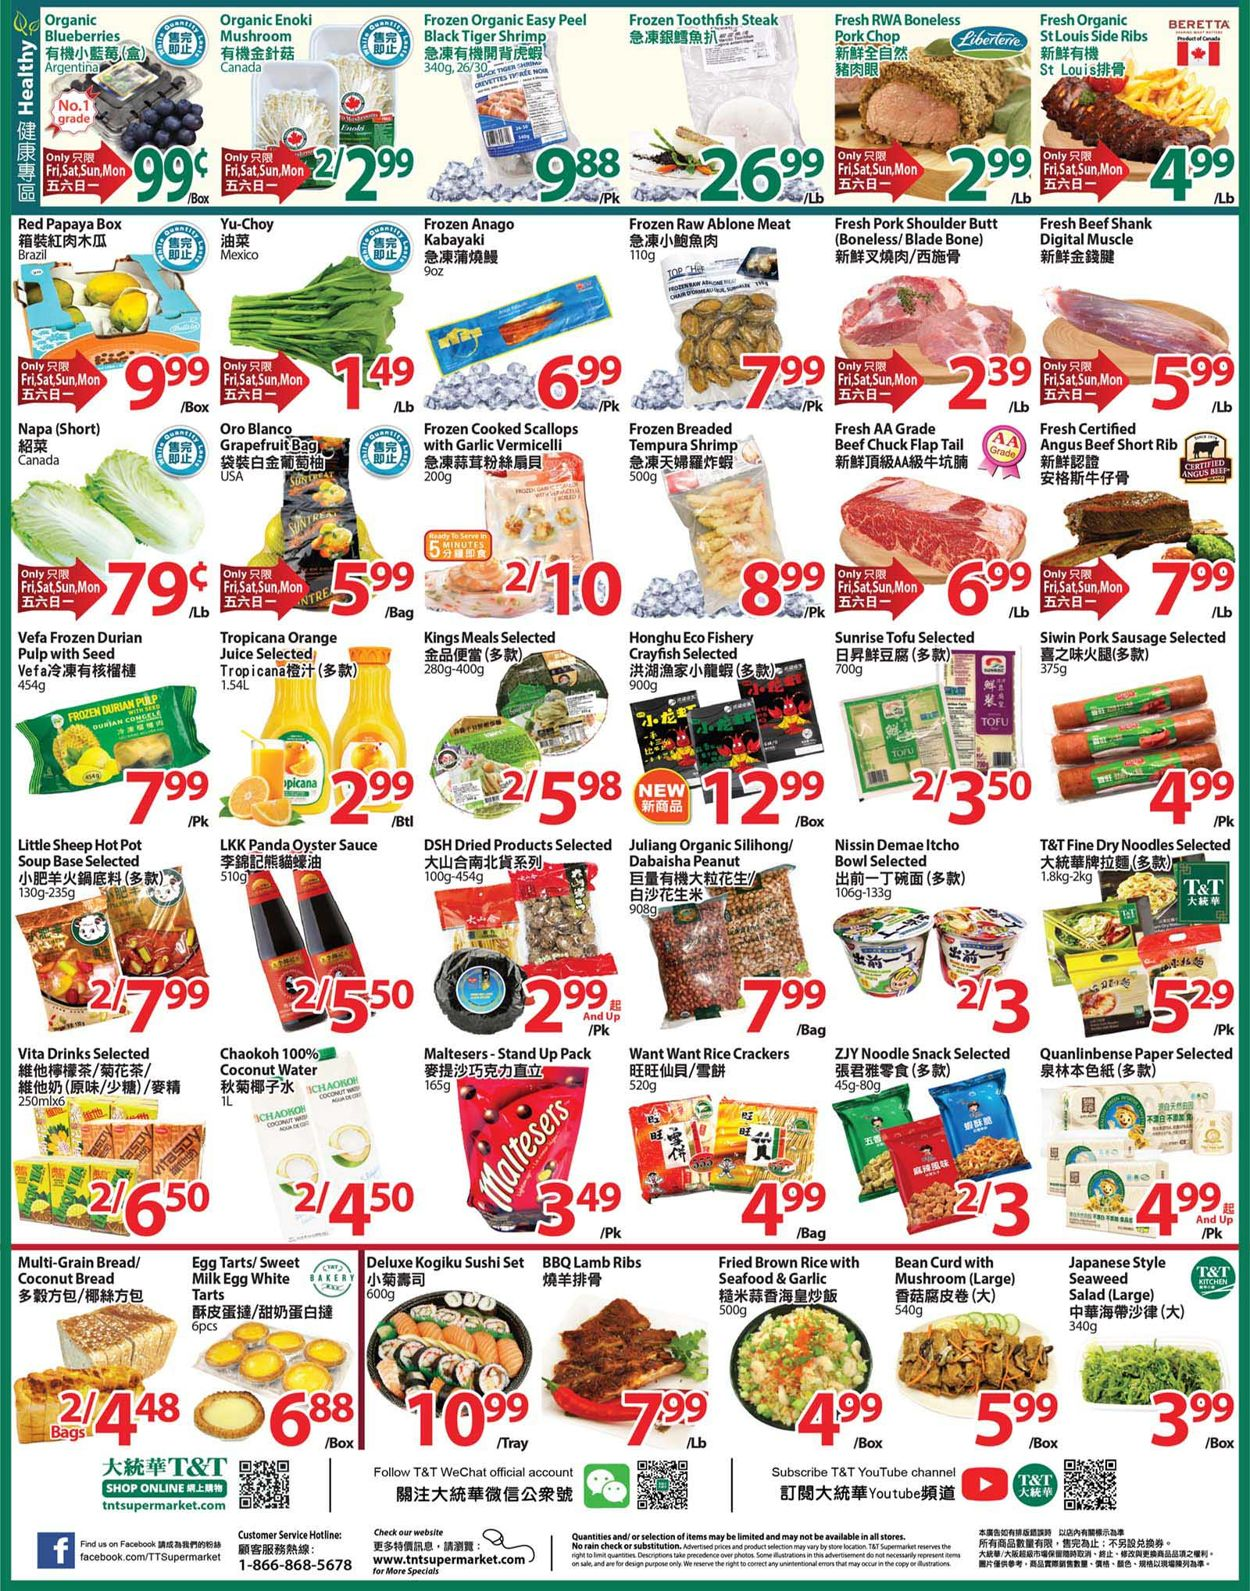 T&T Supermarket Black Friday 2020 - Greater Toronto Area Flyer - 11/27-12/03/2020 (Page 2)